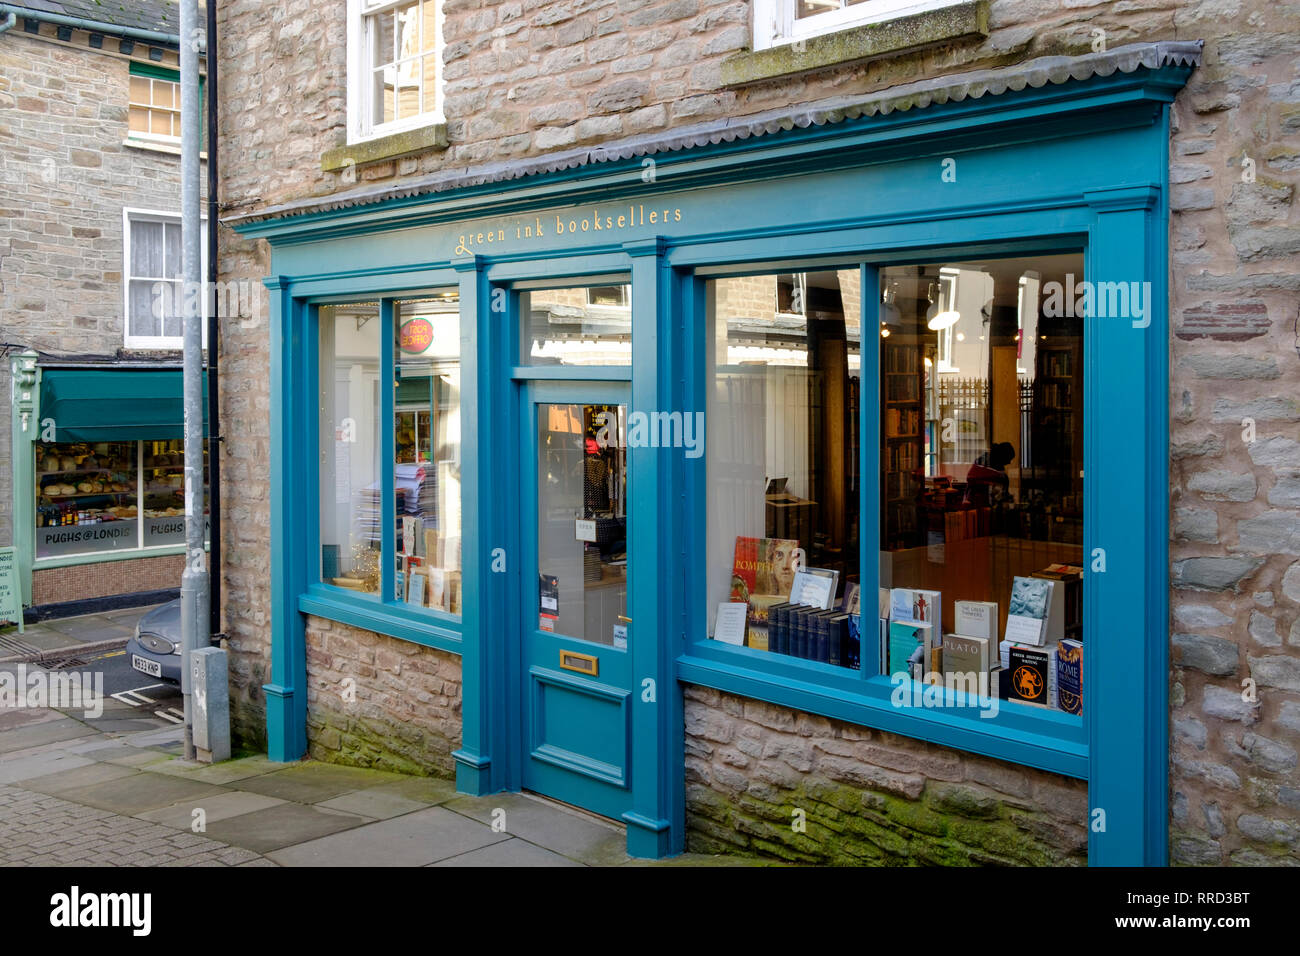 Hay-on-Wye a small market town in Brecknockshire Wales UK Green Ink booksellers - Stock Image